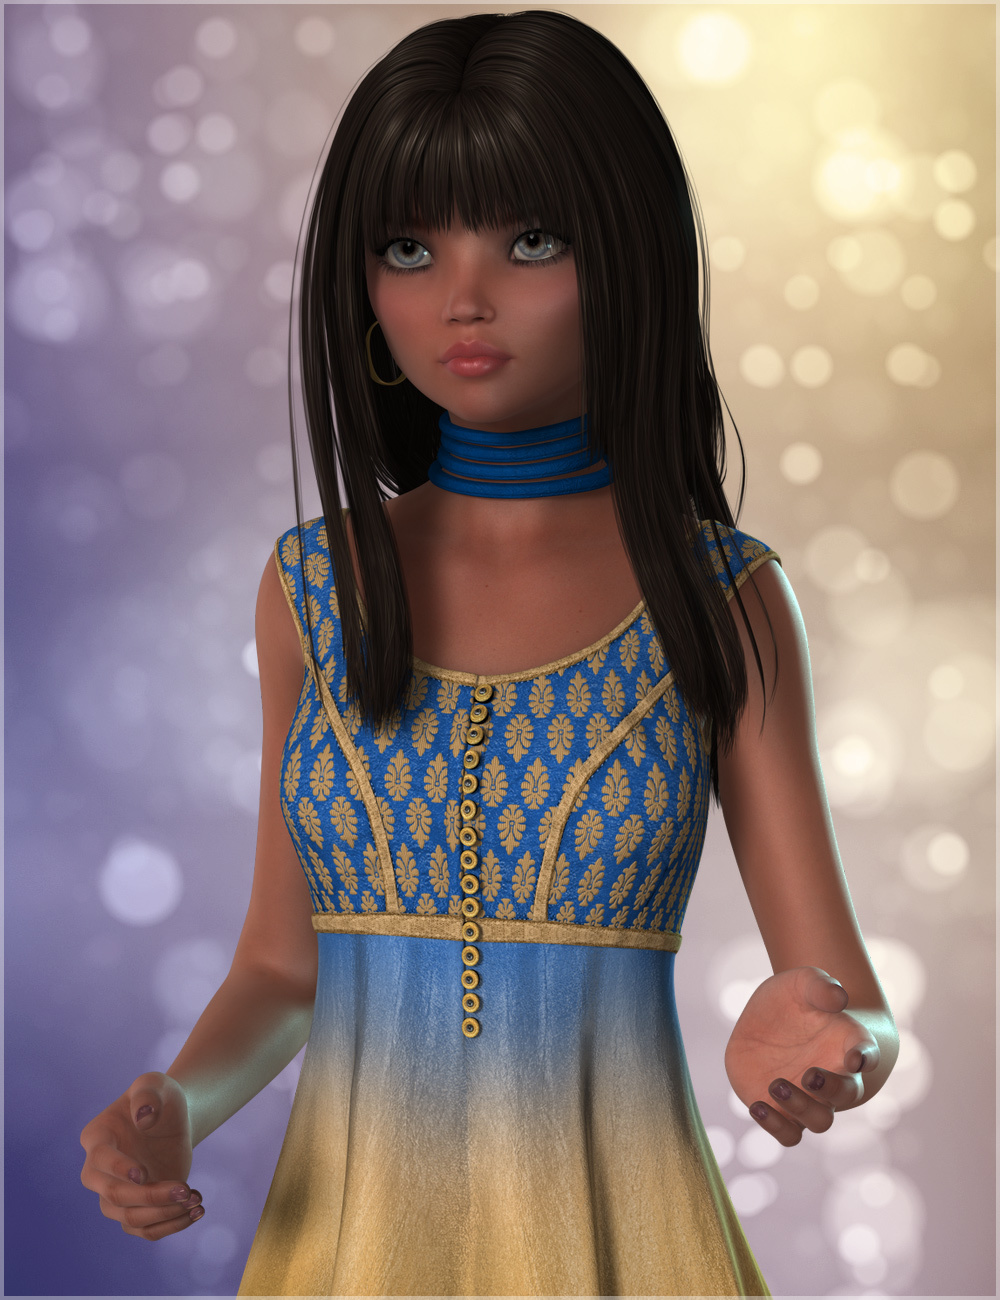 Sweet Kyleigh by Sabby